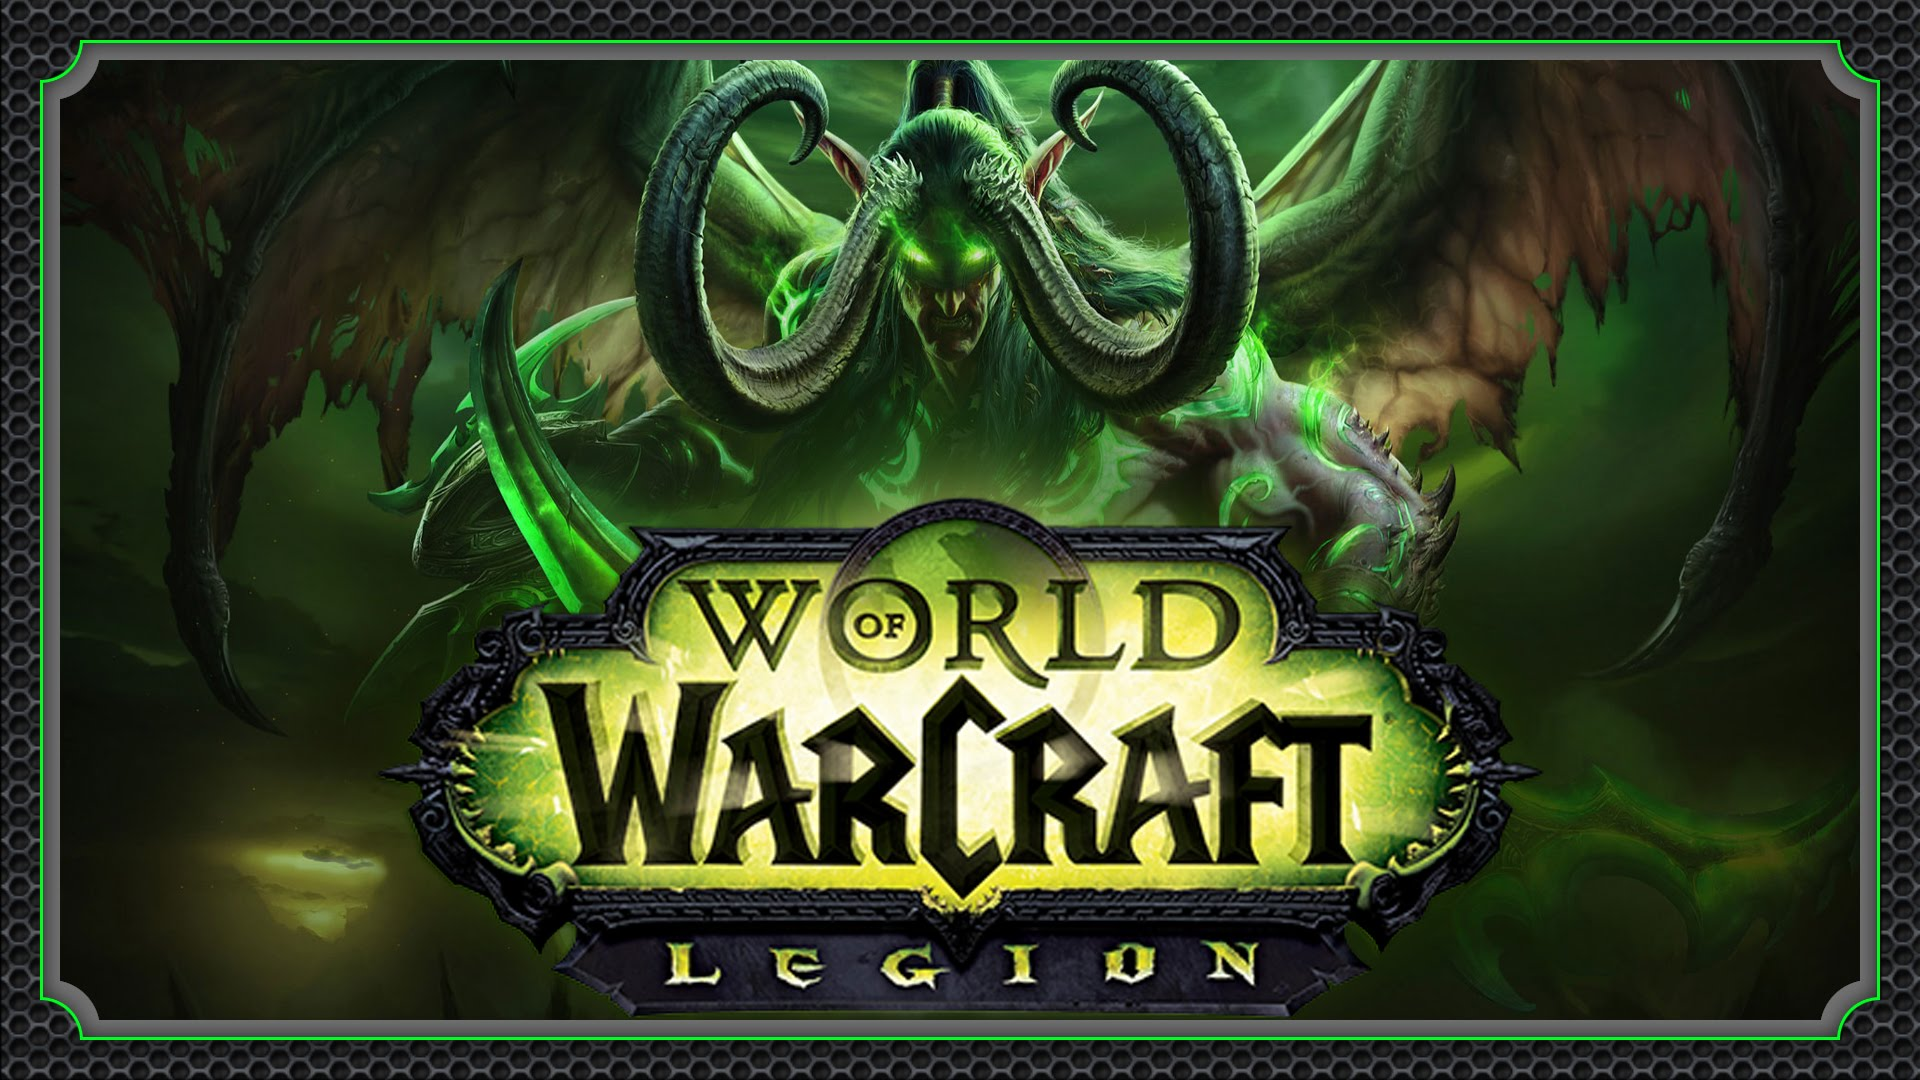 Call Of Duty Black Ops Wallpaper World Of Warcraft Legion Wallpapers Pictures Images